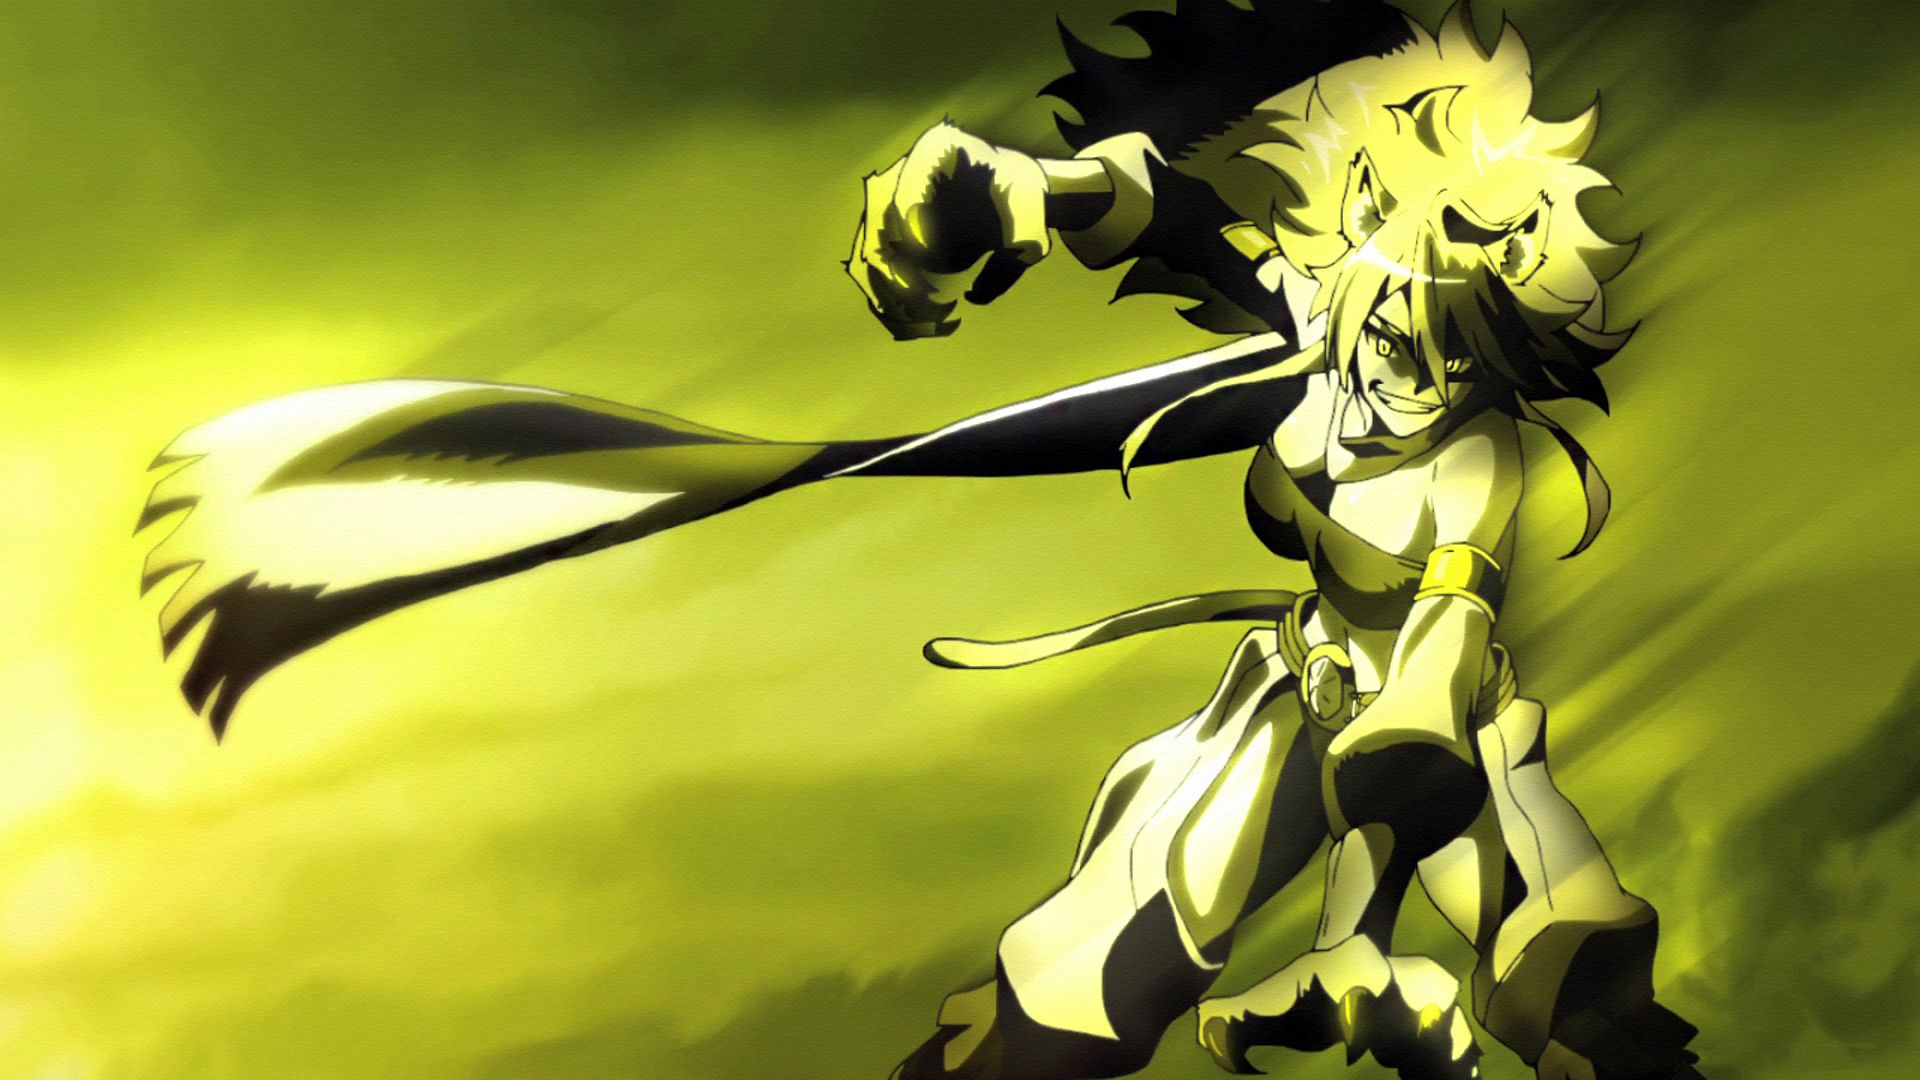 Pin By Wallpapers Venue On Celebrities Wallpapers Akame Ga